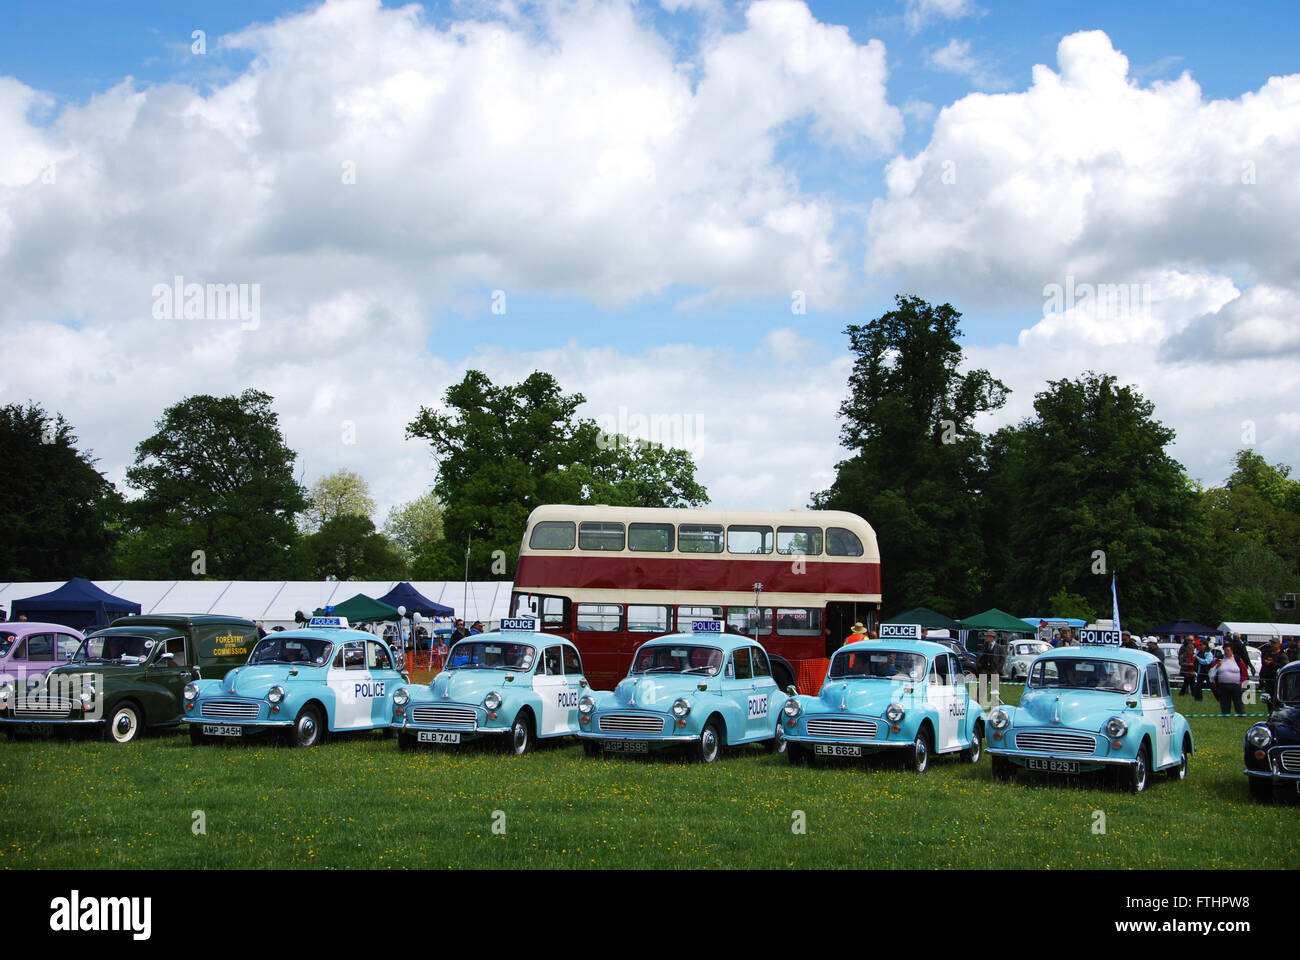 vintage police Minors at Morris Centenary celebrations at Cornbury Park, Charlbury Oxford, United Kingdom Stock Photo